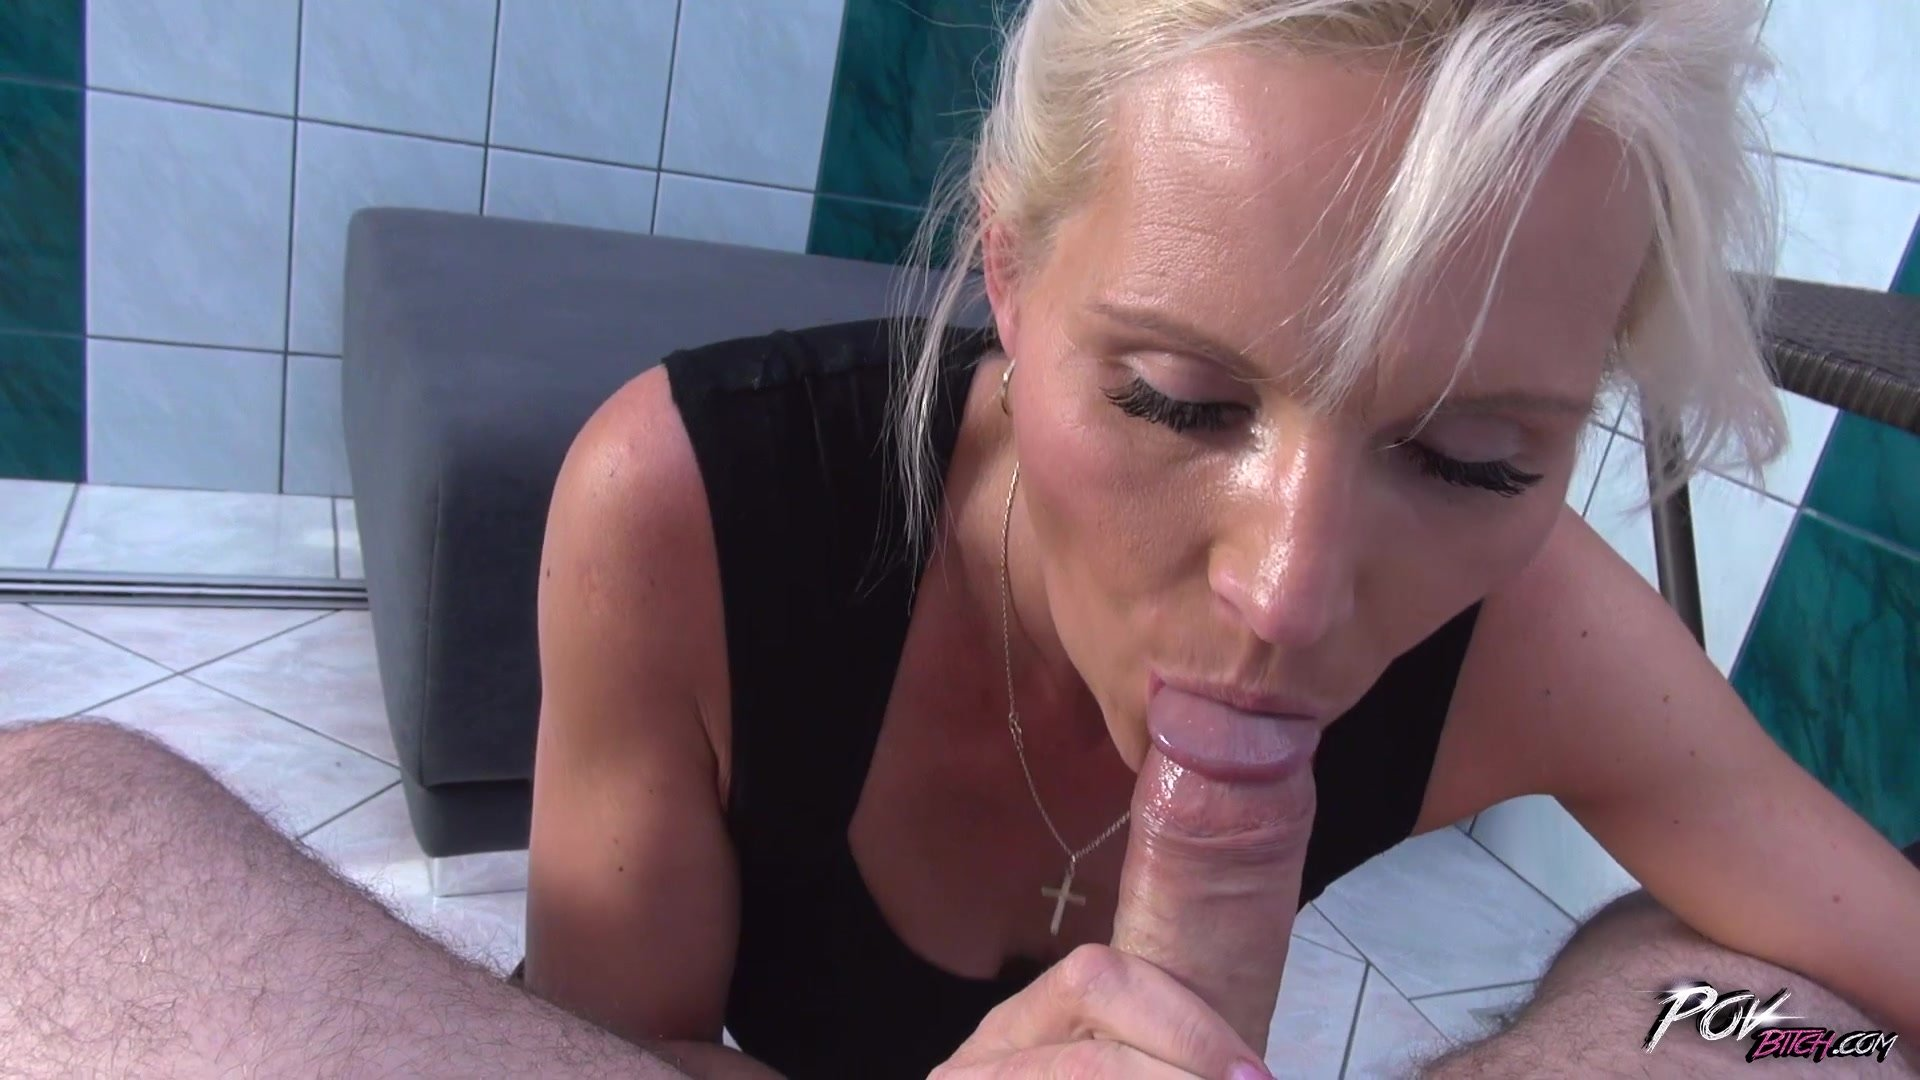 lesbian mature and young porn add photo